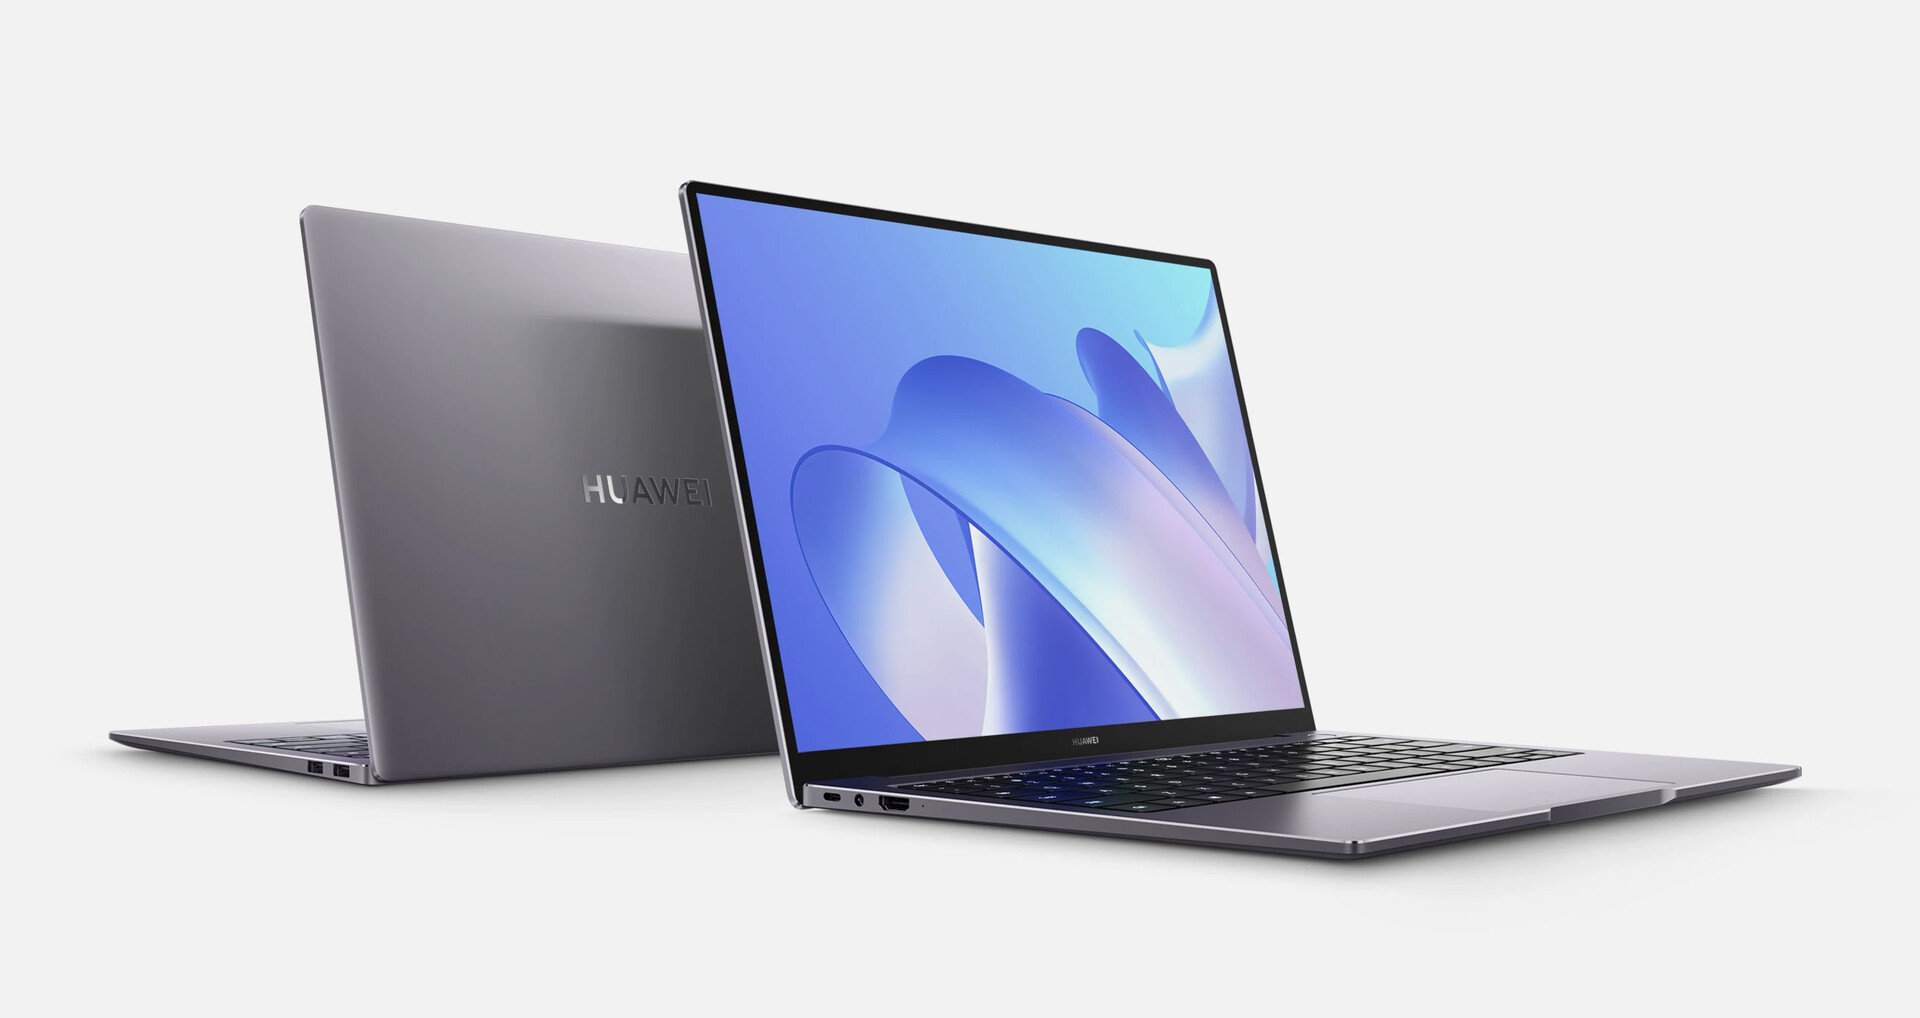 Huawei MateBook 14 2021 debuts with upgraded processors, a dedicated GPU option and a 56 Wh battery - Notebookcheck.net